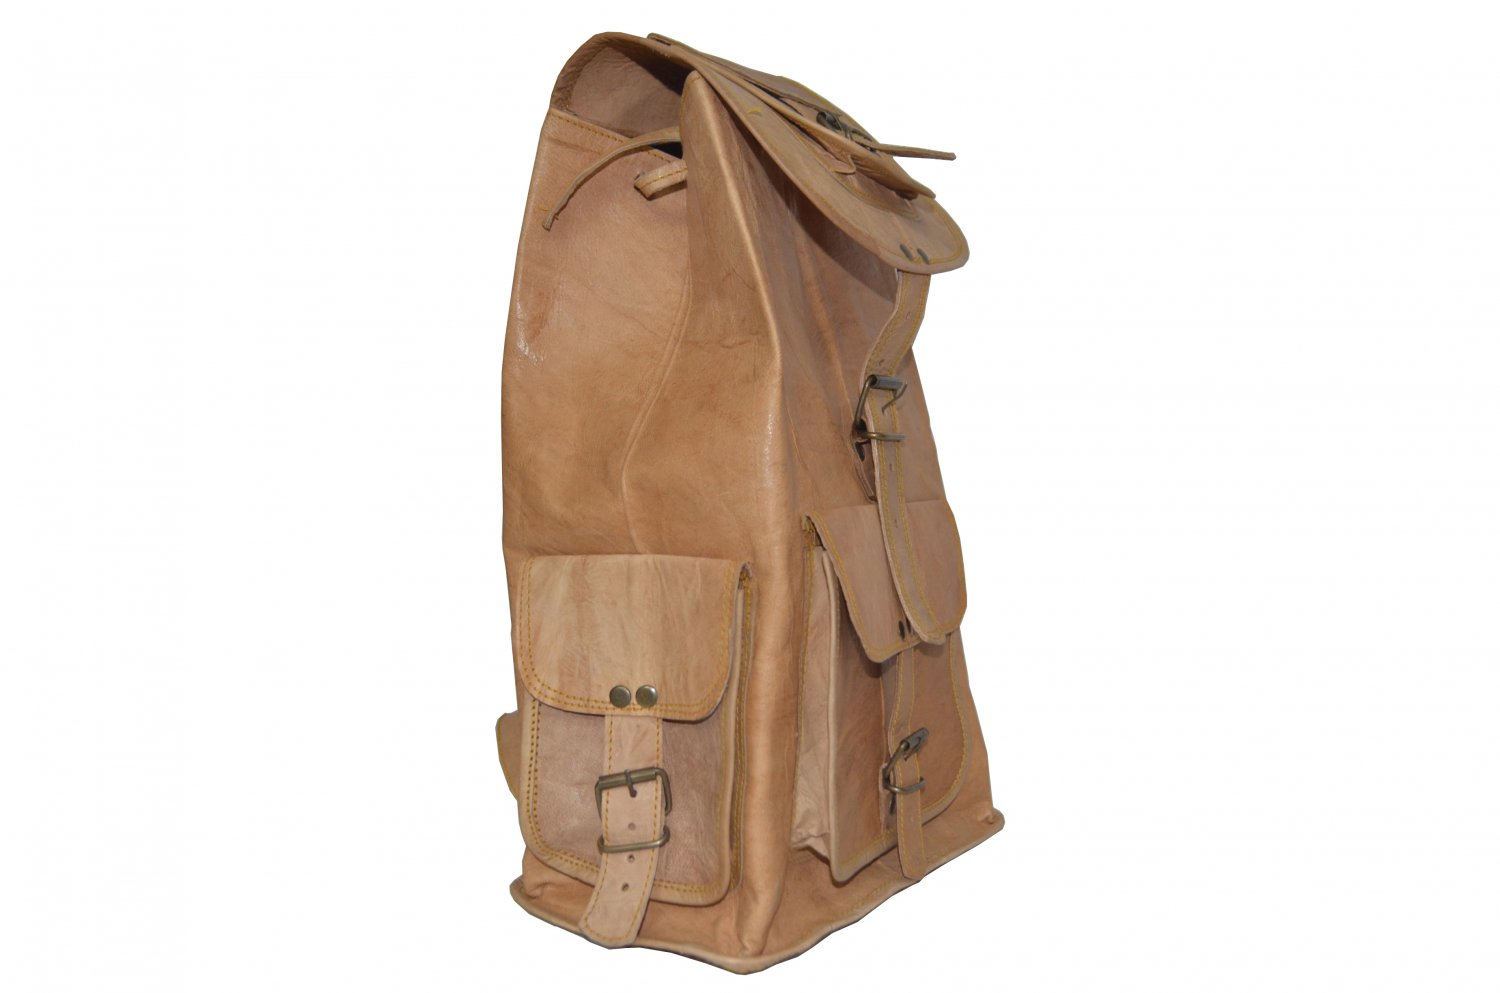 Leather backpack / men backpack / boys backpack / women backpack for travel and camping.